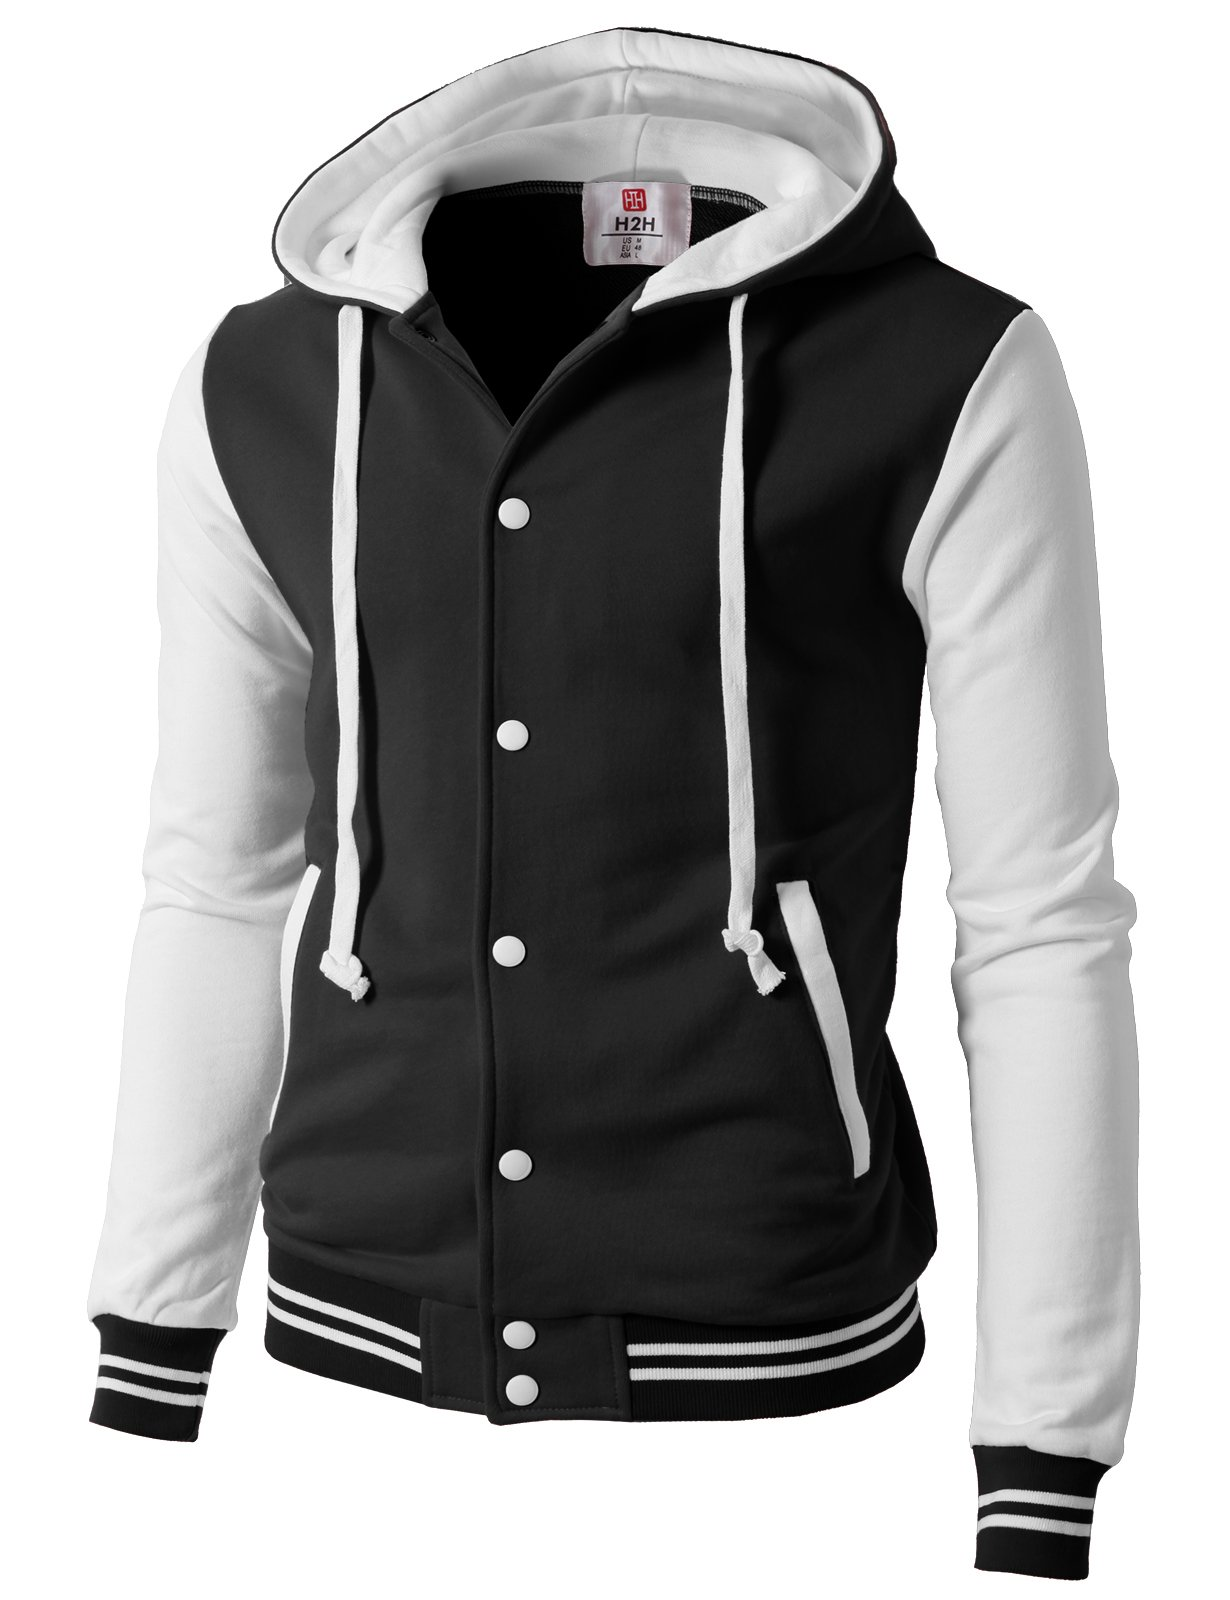 H2H Mens Casual Slim Fit Long Sleeve Color Block Hoodie Jacket Blackwhite US M/Asia L (CMOJA099) by H2H